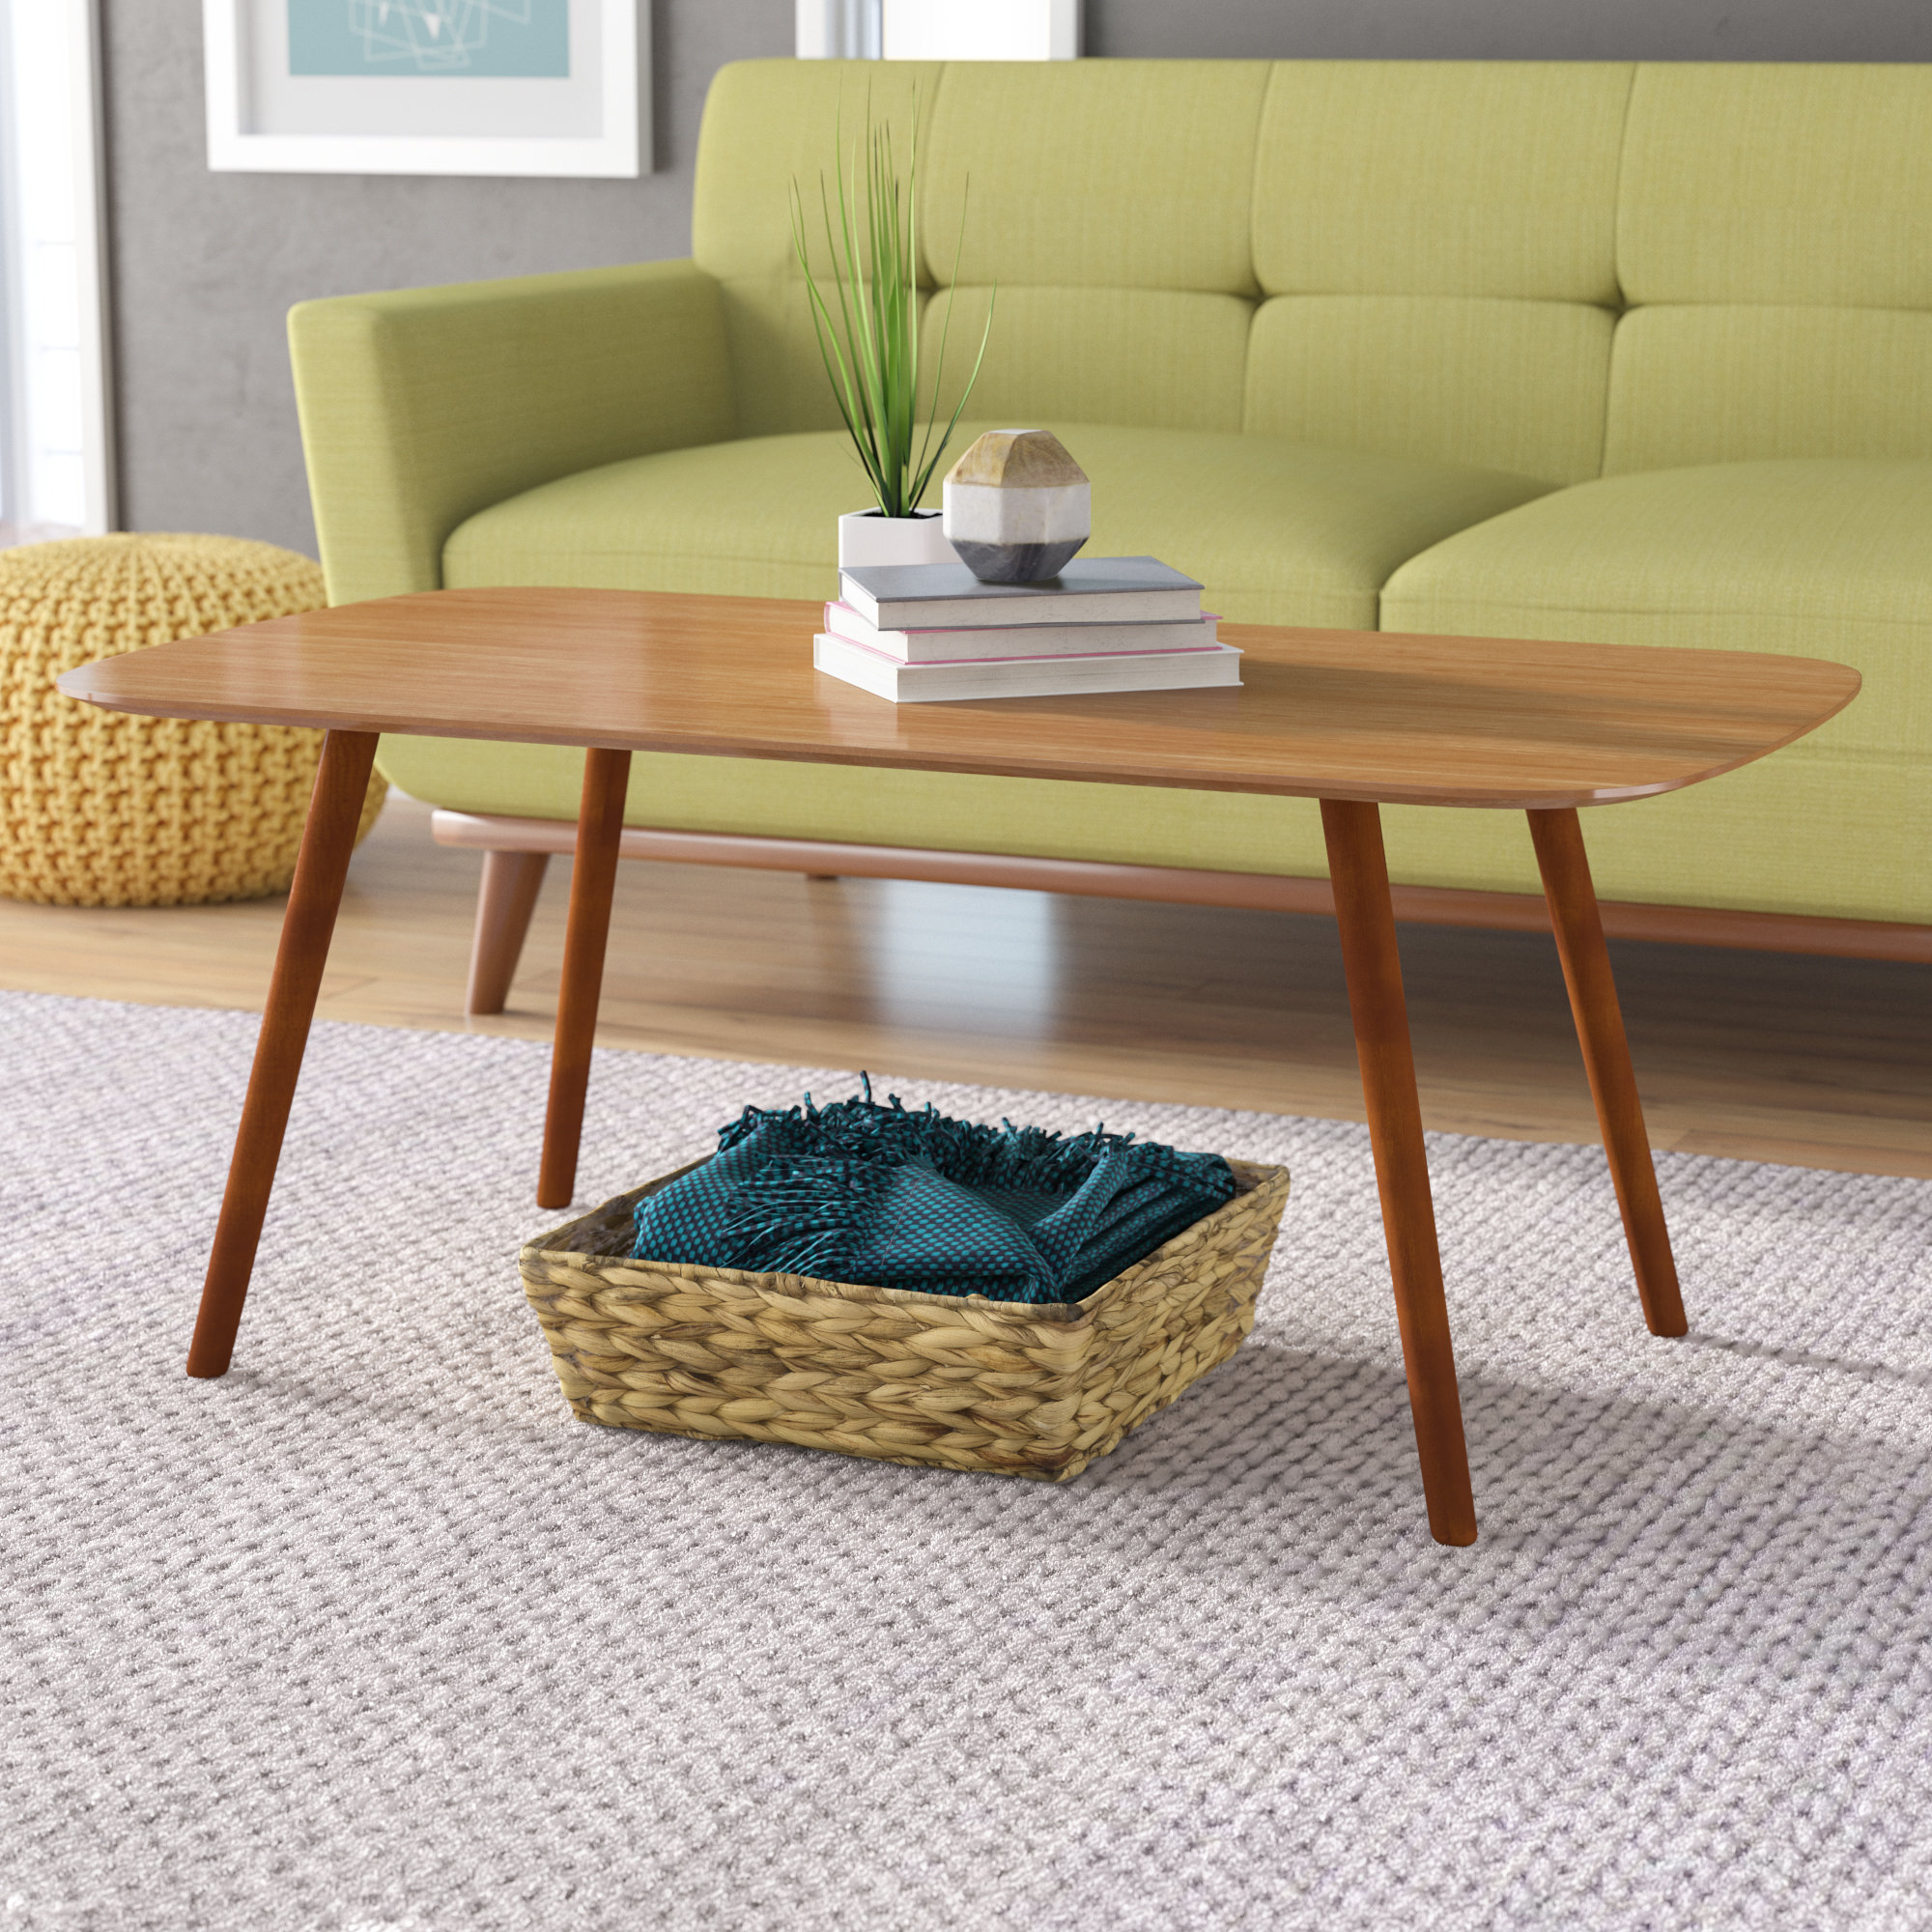 Popular Langley Street Creenagh Coffee Table & Reviews (View 13 of 20)